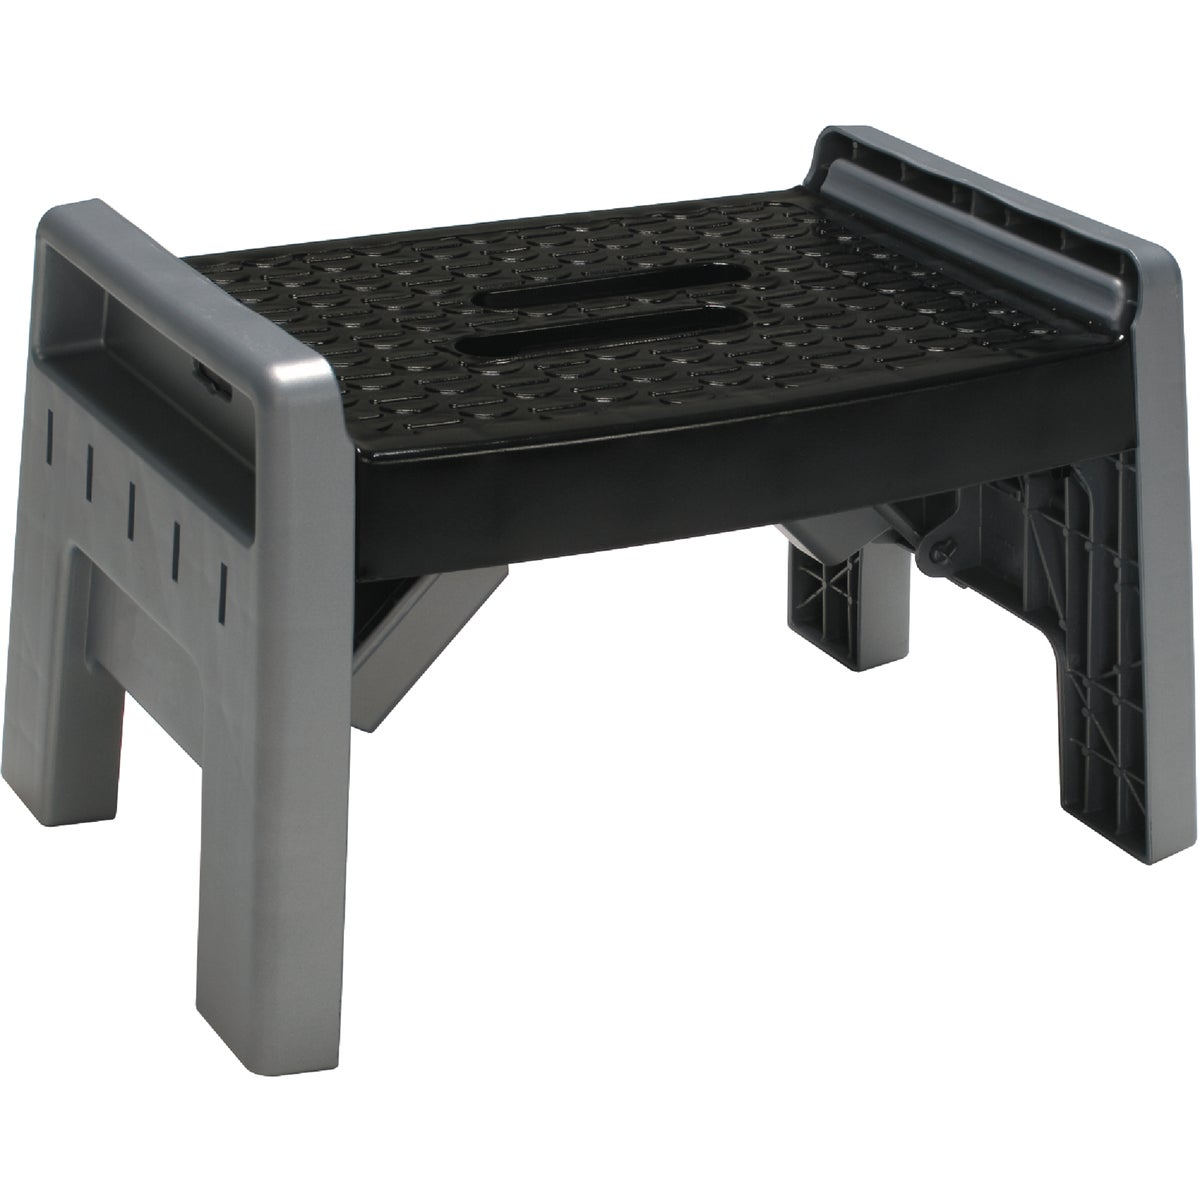 FOLDING STEP STOOL - 11-905-PLB4 by Cosco    J Myalls